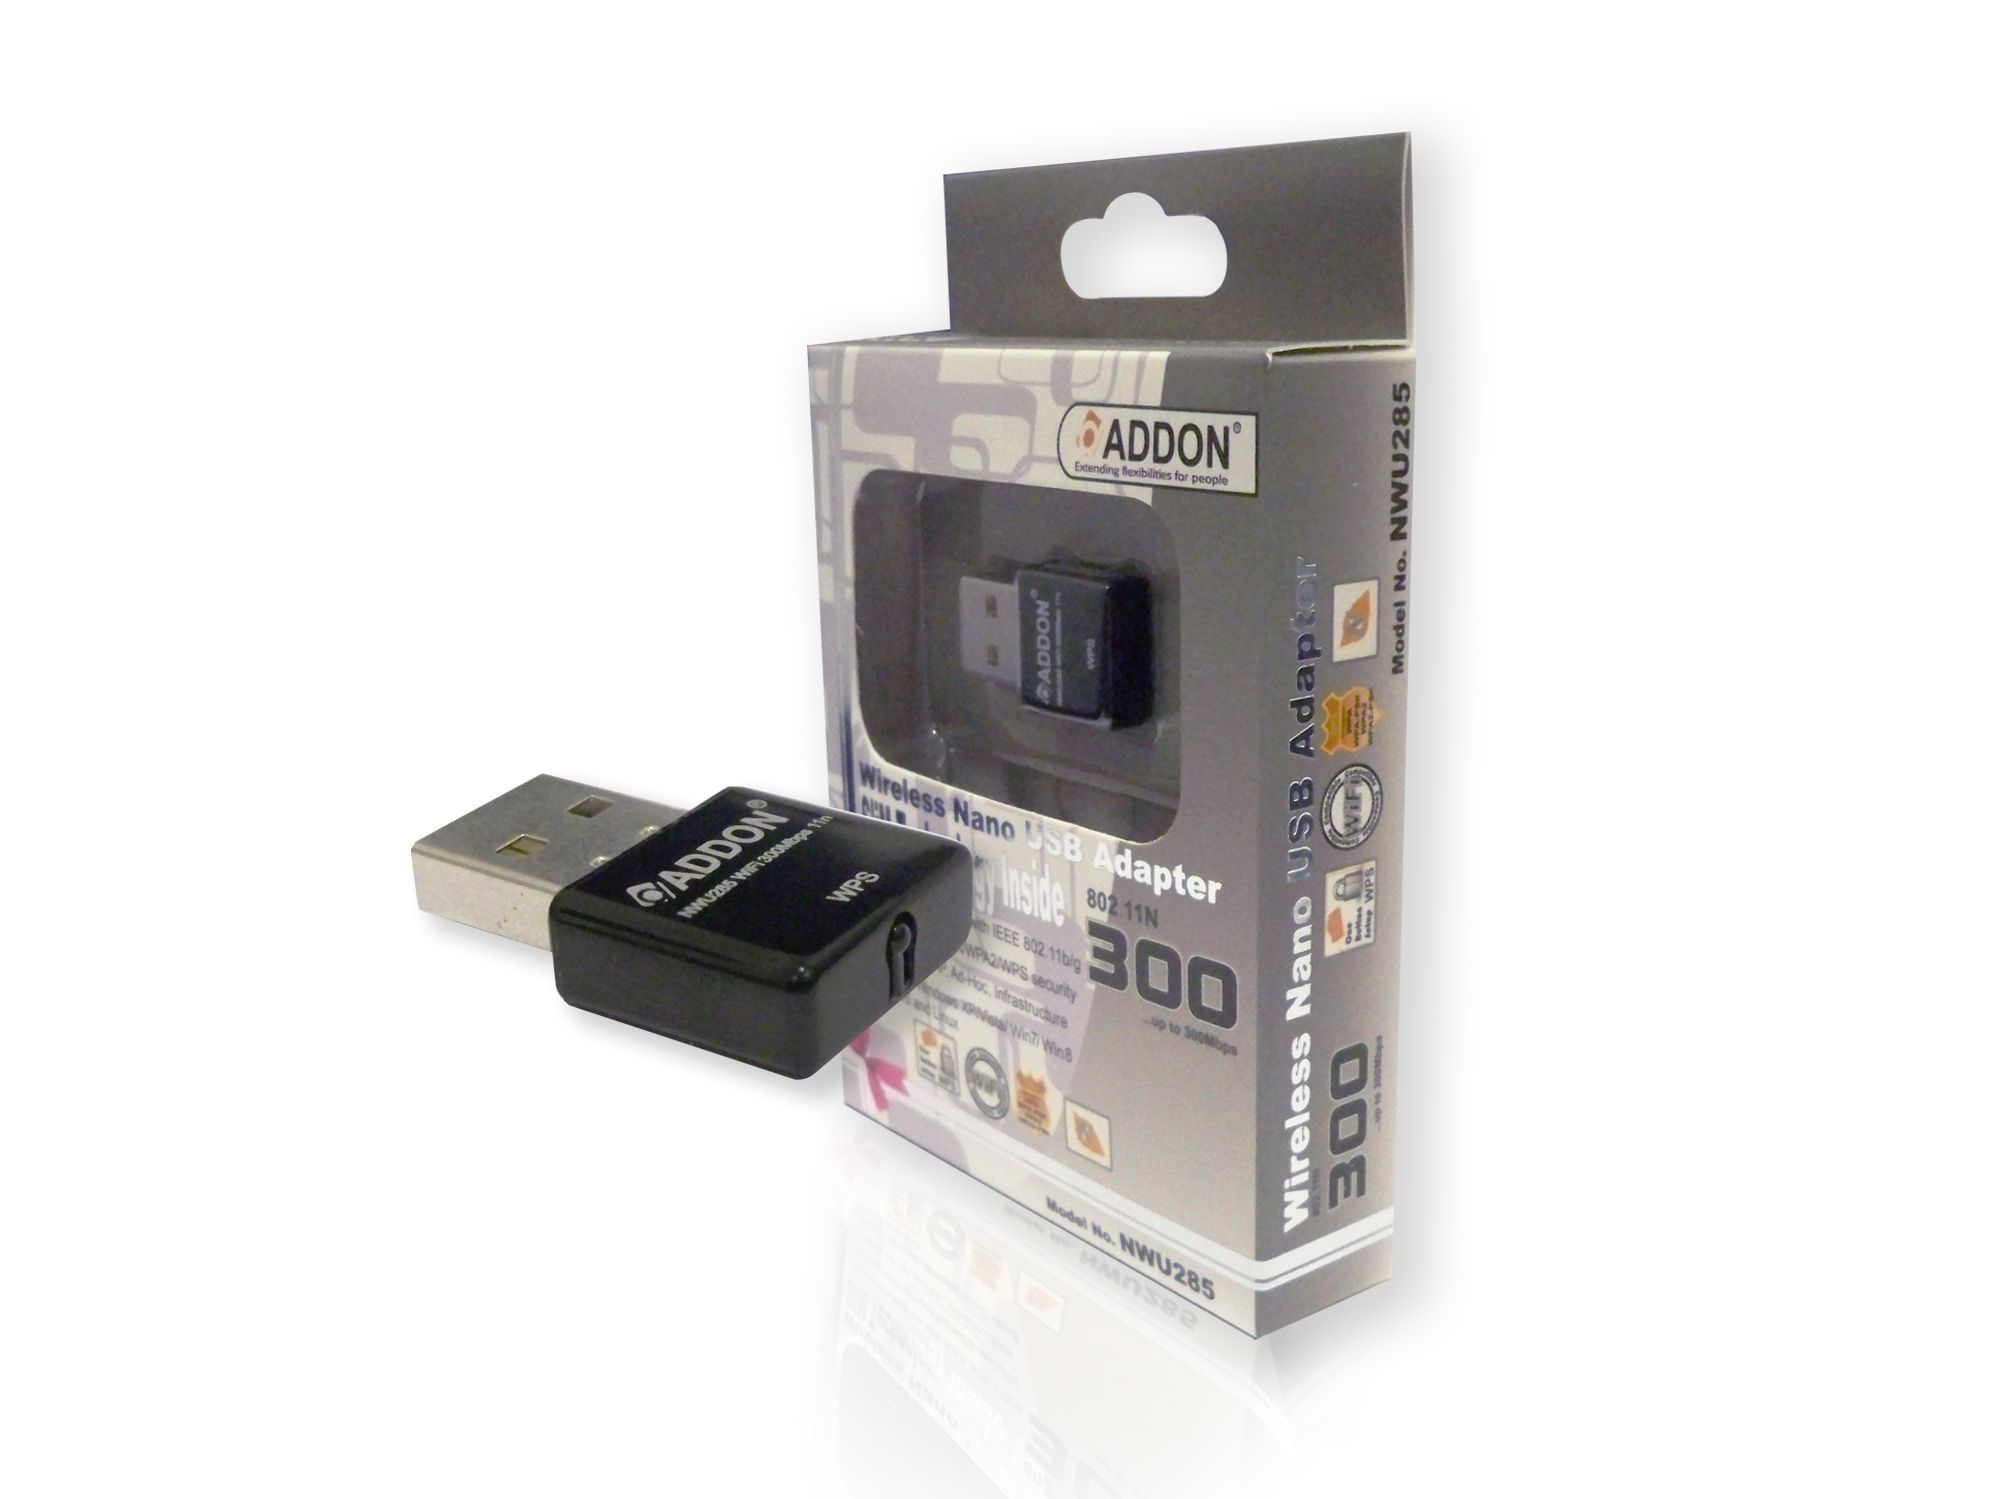 Nano wireless usb adapter driver - Addon Nwu285 11n 300mbps Wireless Usb Nano Adapter Mini Dongle